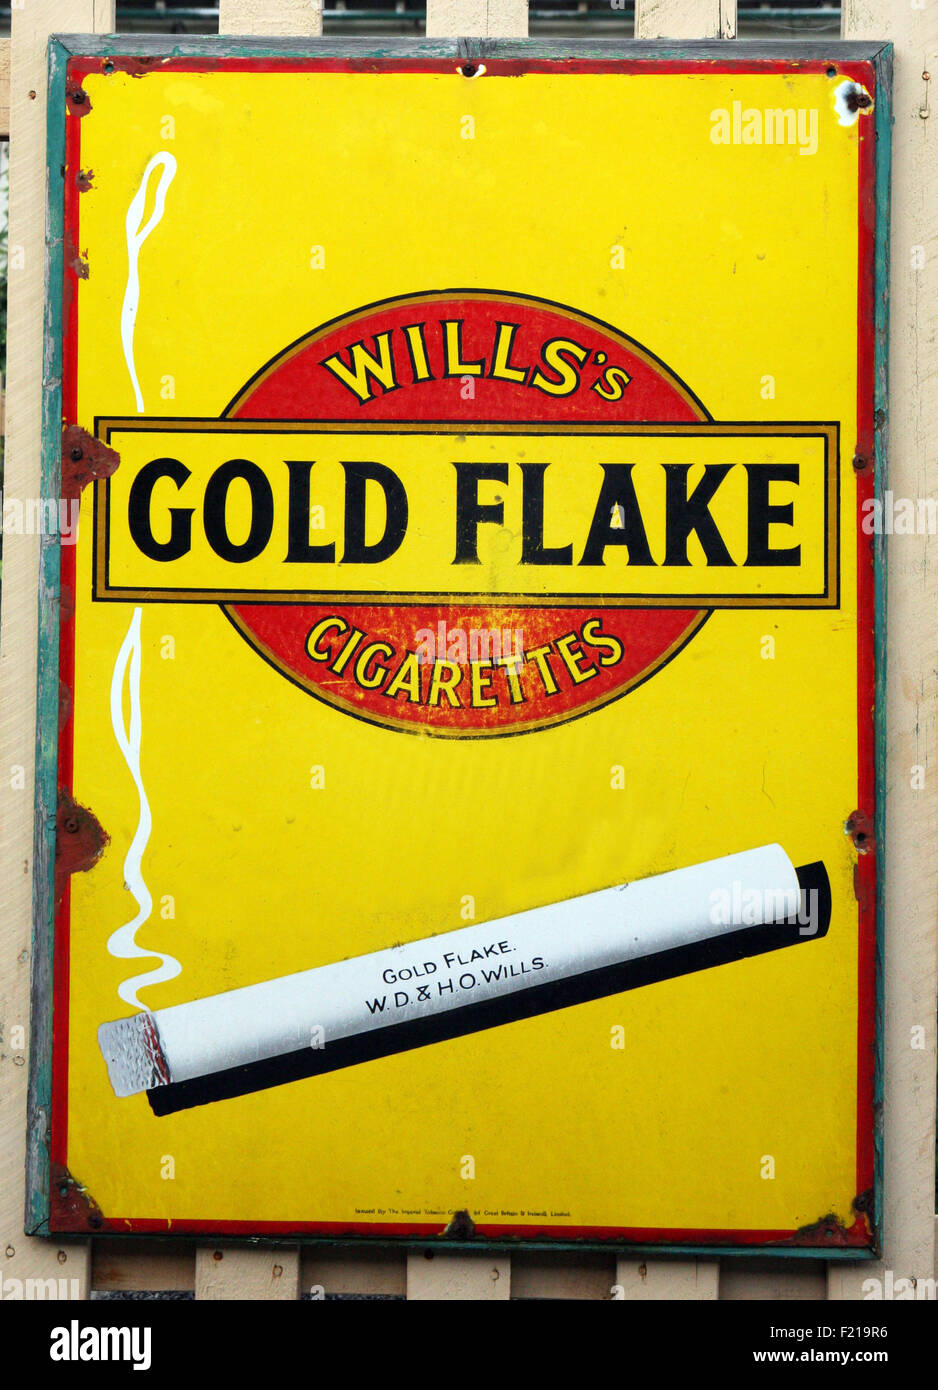 Wills Gold flake poster - Stock Image